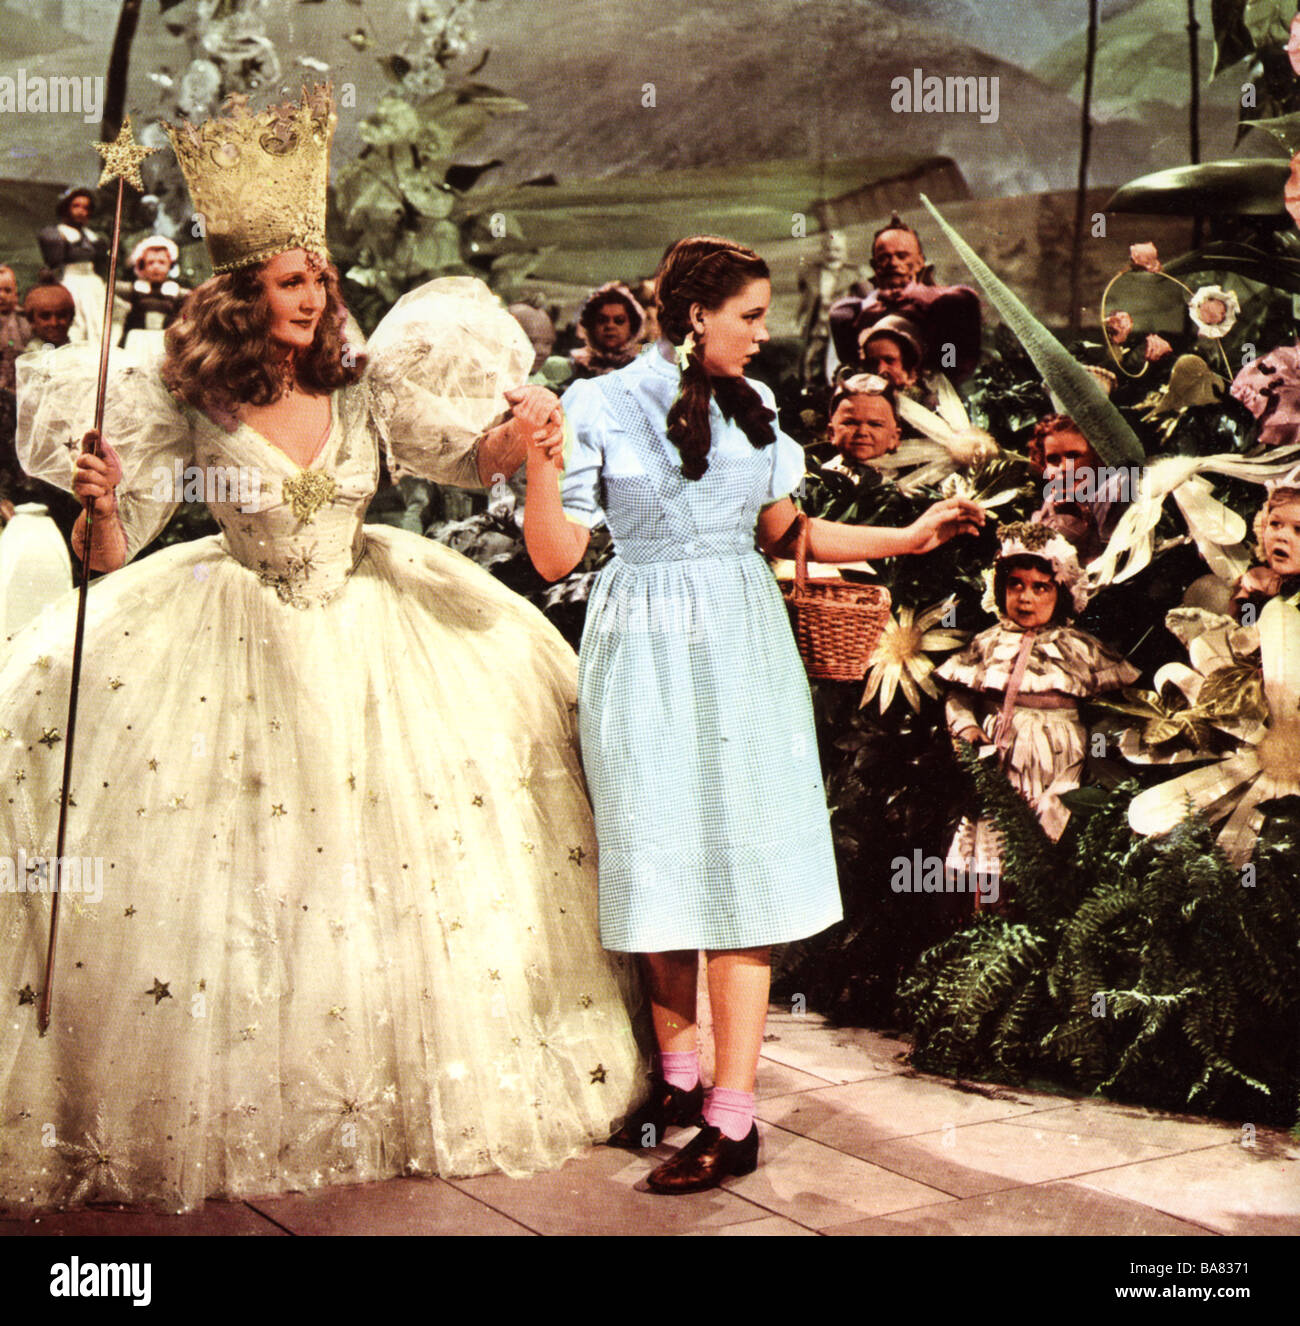 The Wizard Of Oz 1939 Mgm Film With Judy Garland As Dorothy And Stock Photo Alamy